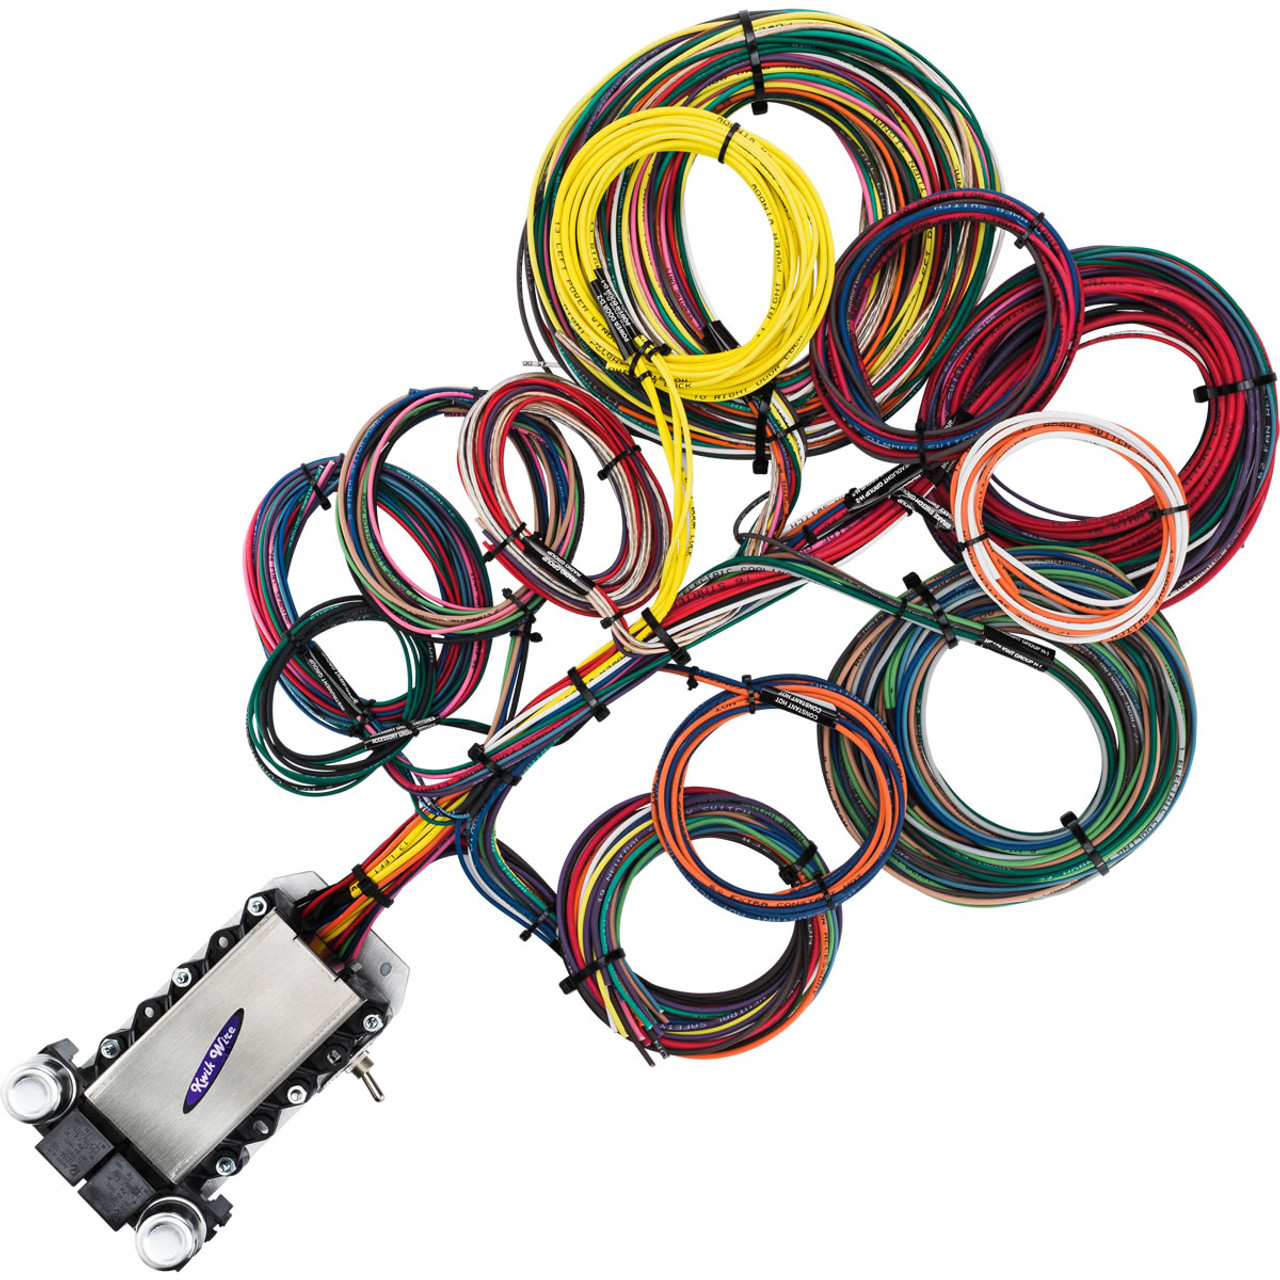 3 Circuit Universal Wiring Harness Kit Diagram Libraries 22 Wire Kwikwire Com Electrify Your Ride22